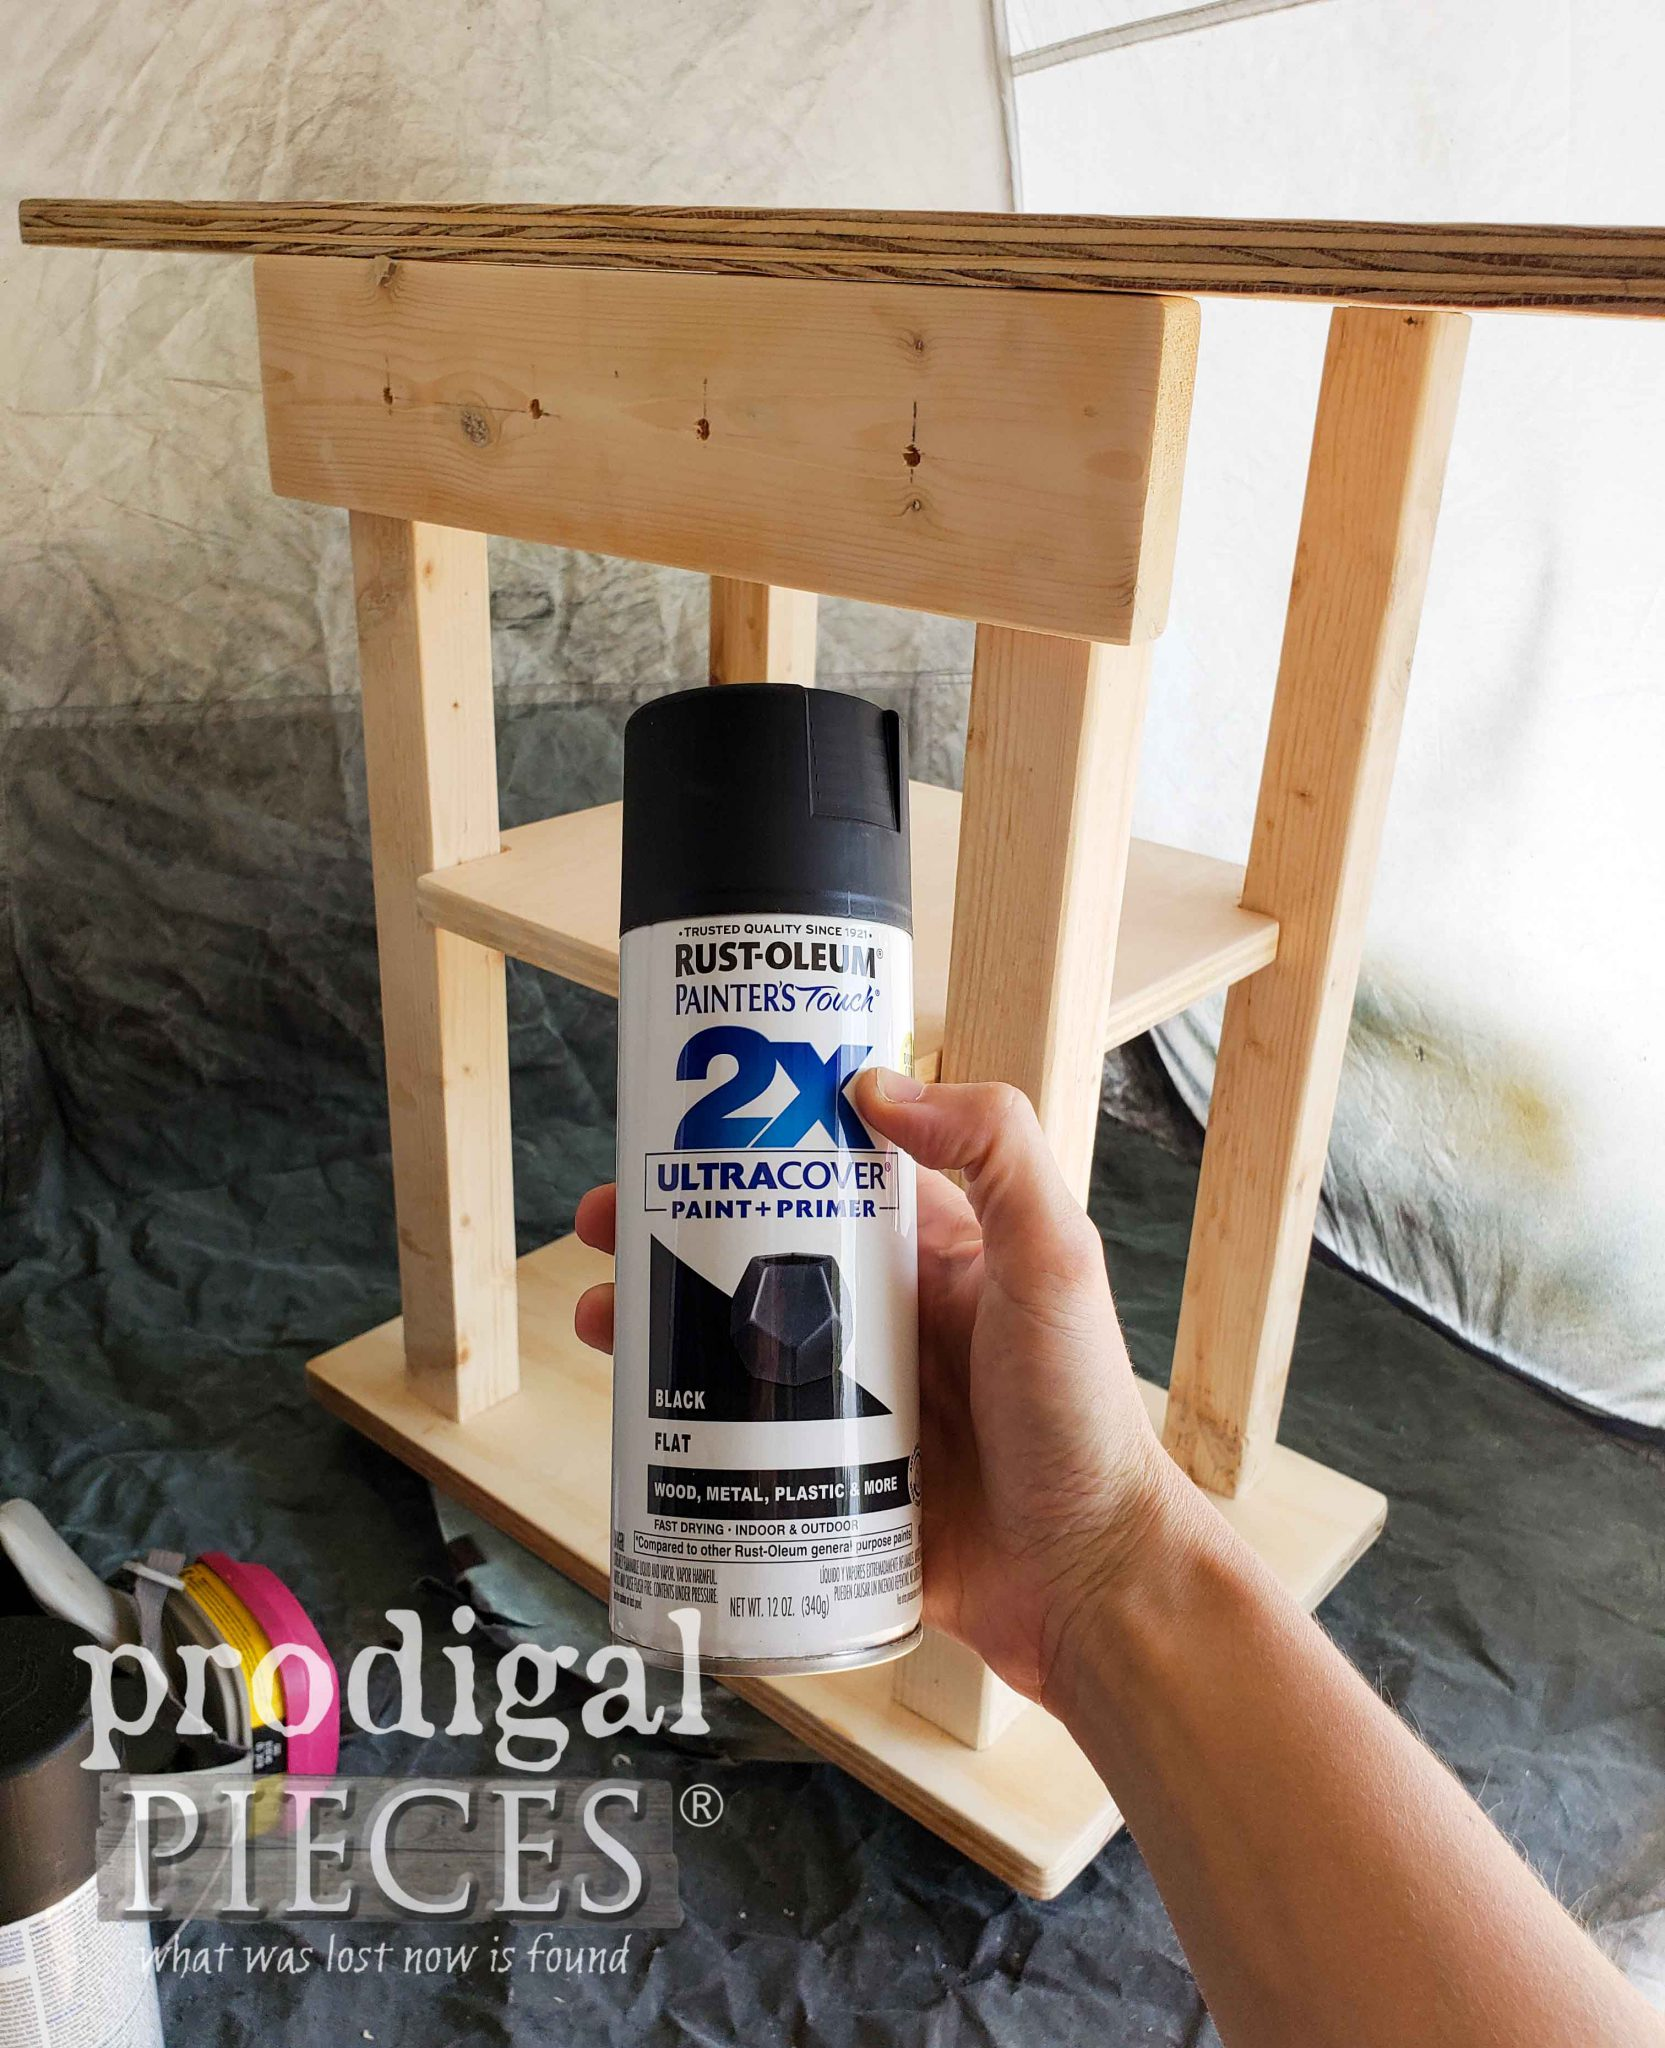 Spray Paining Play Grill with Rustoleum Flat Black 2X Spray | prodigalpieces.com